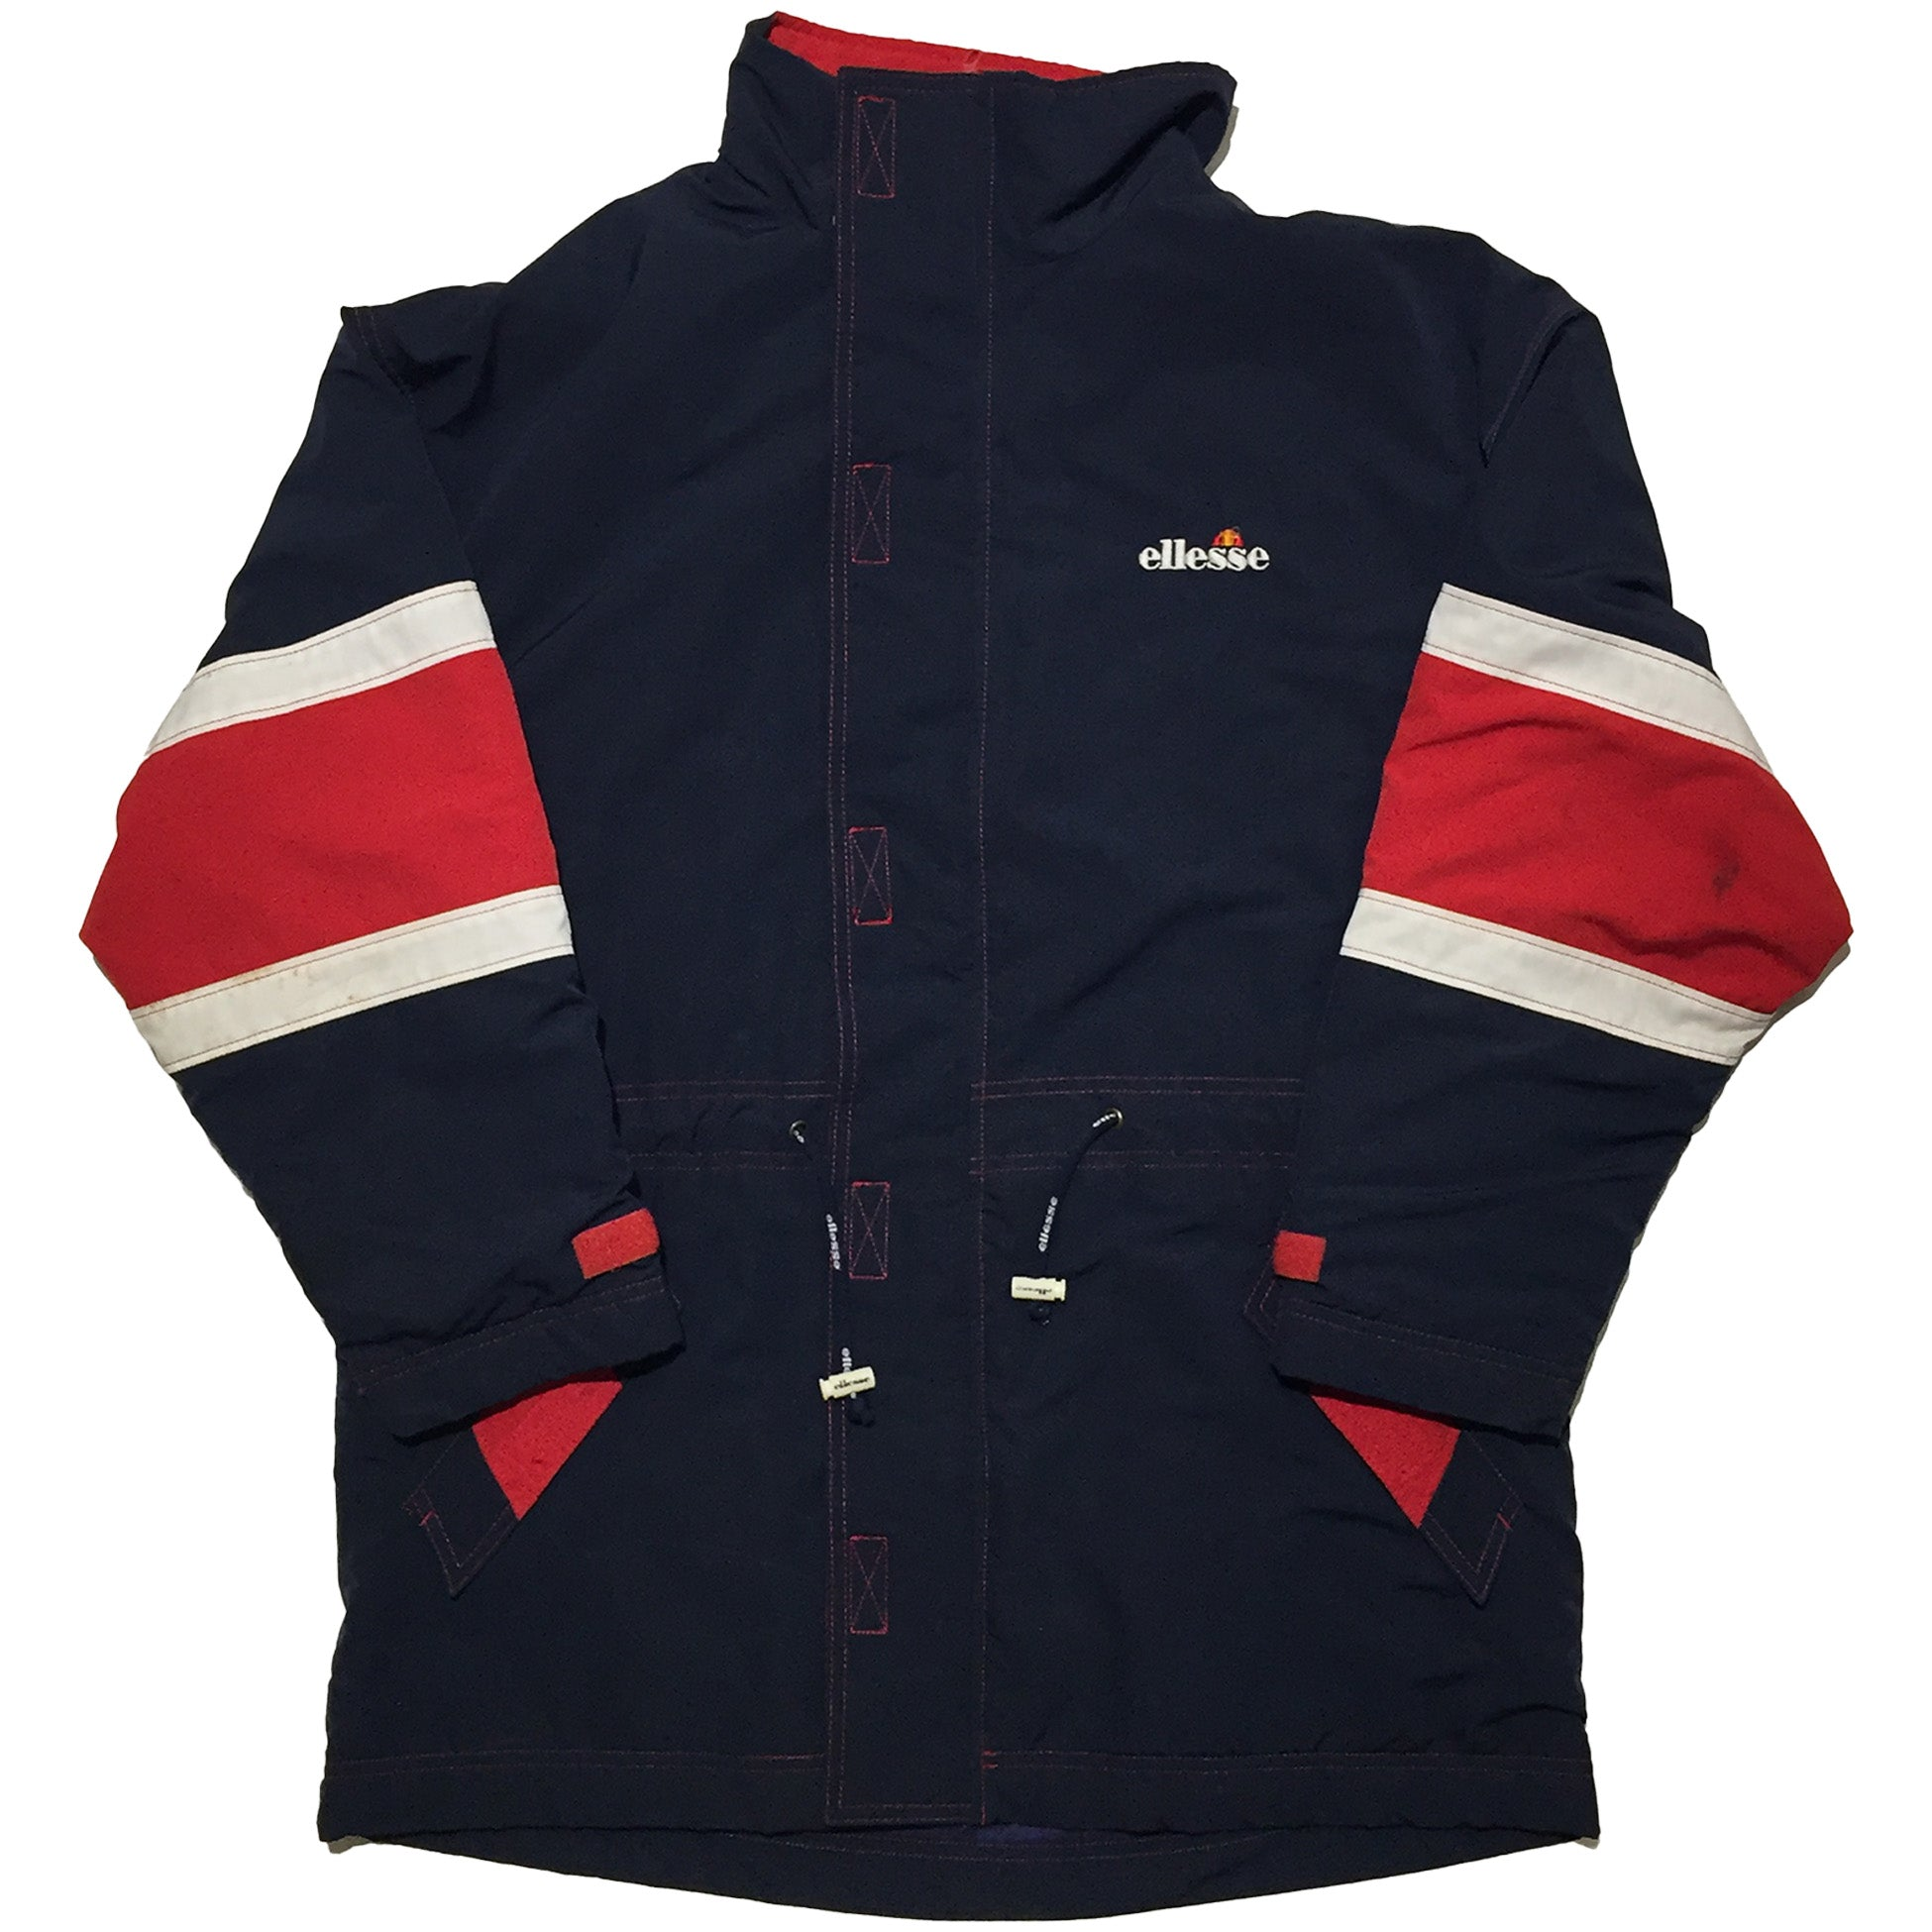 Ellesse Black and Red Jacket